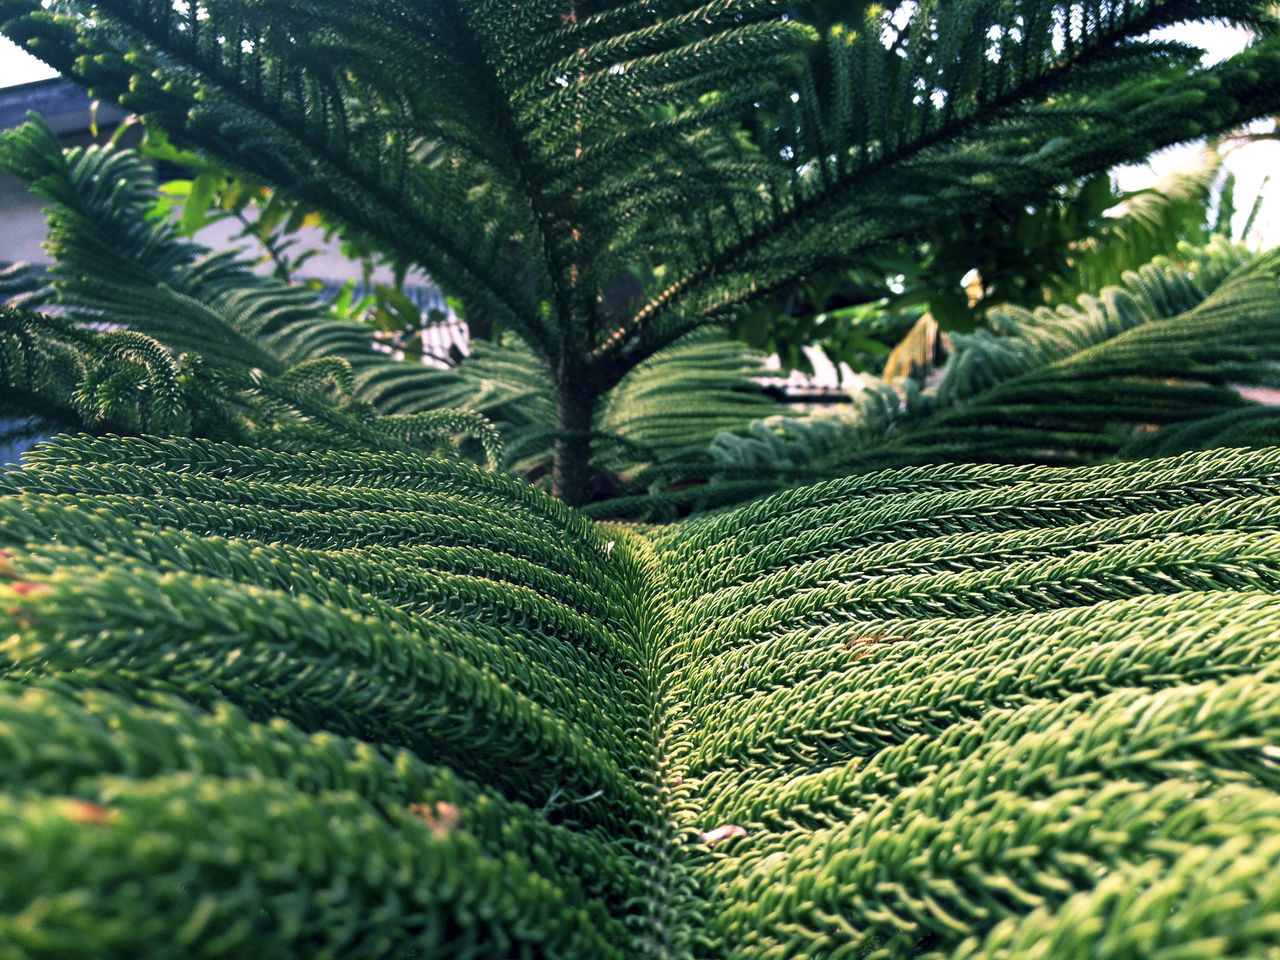 green color, growth, nature, leaf, beauty in nature, plant, fern, no people, day, close-up, freshness, outdoors, fragility